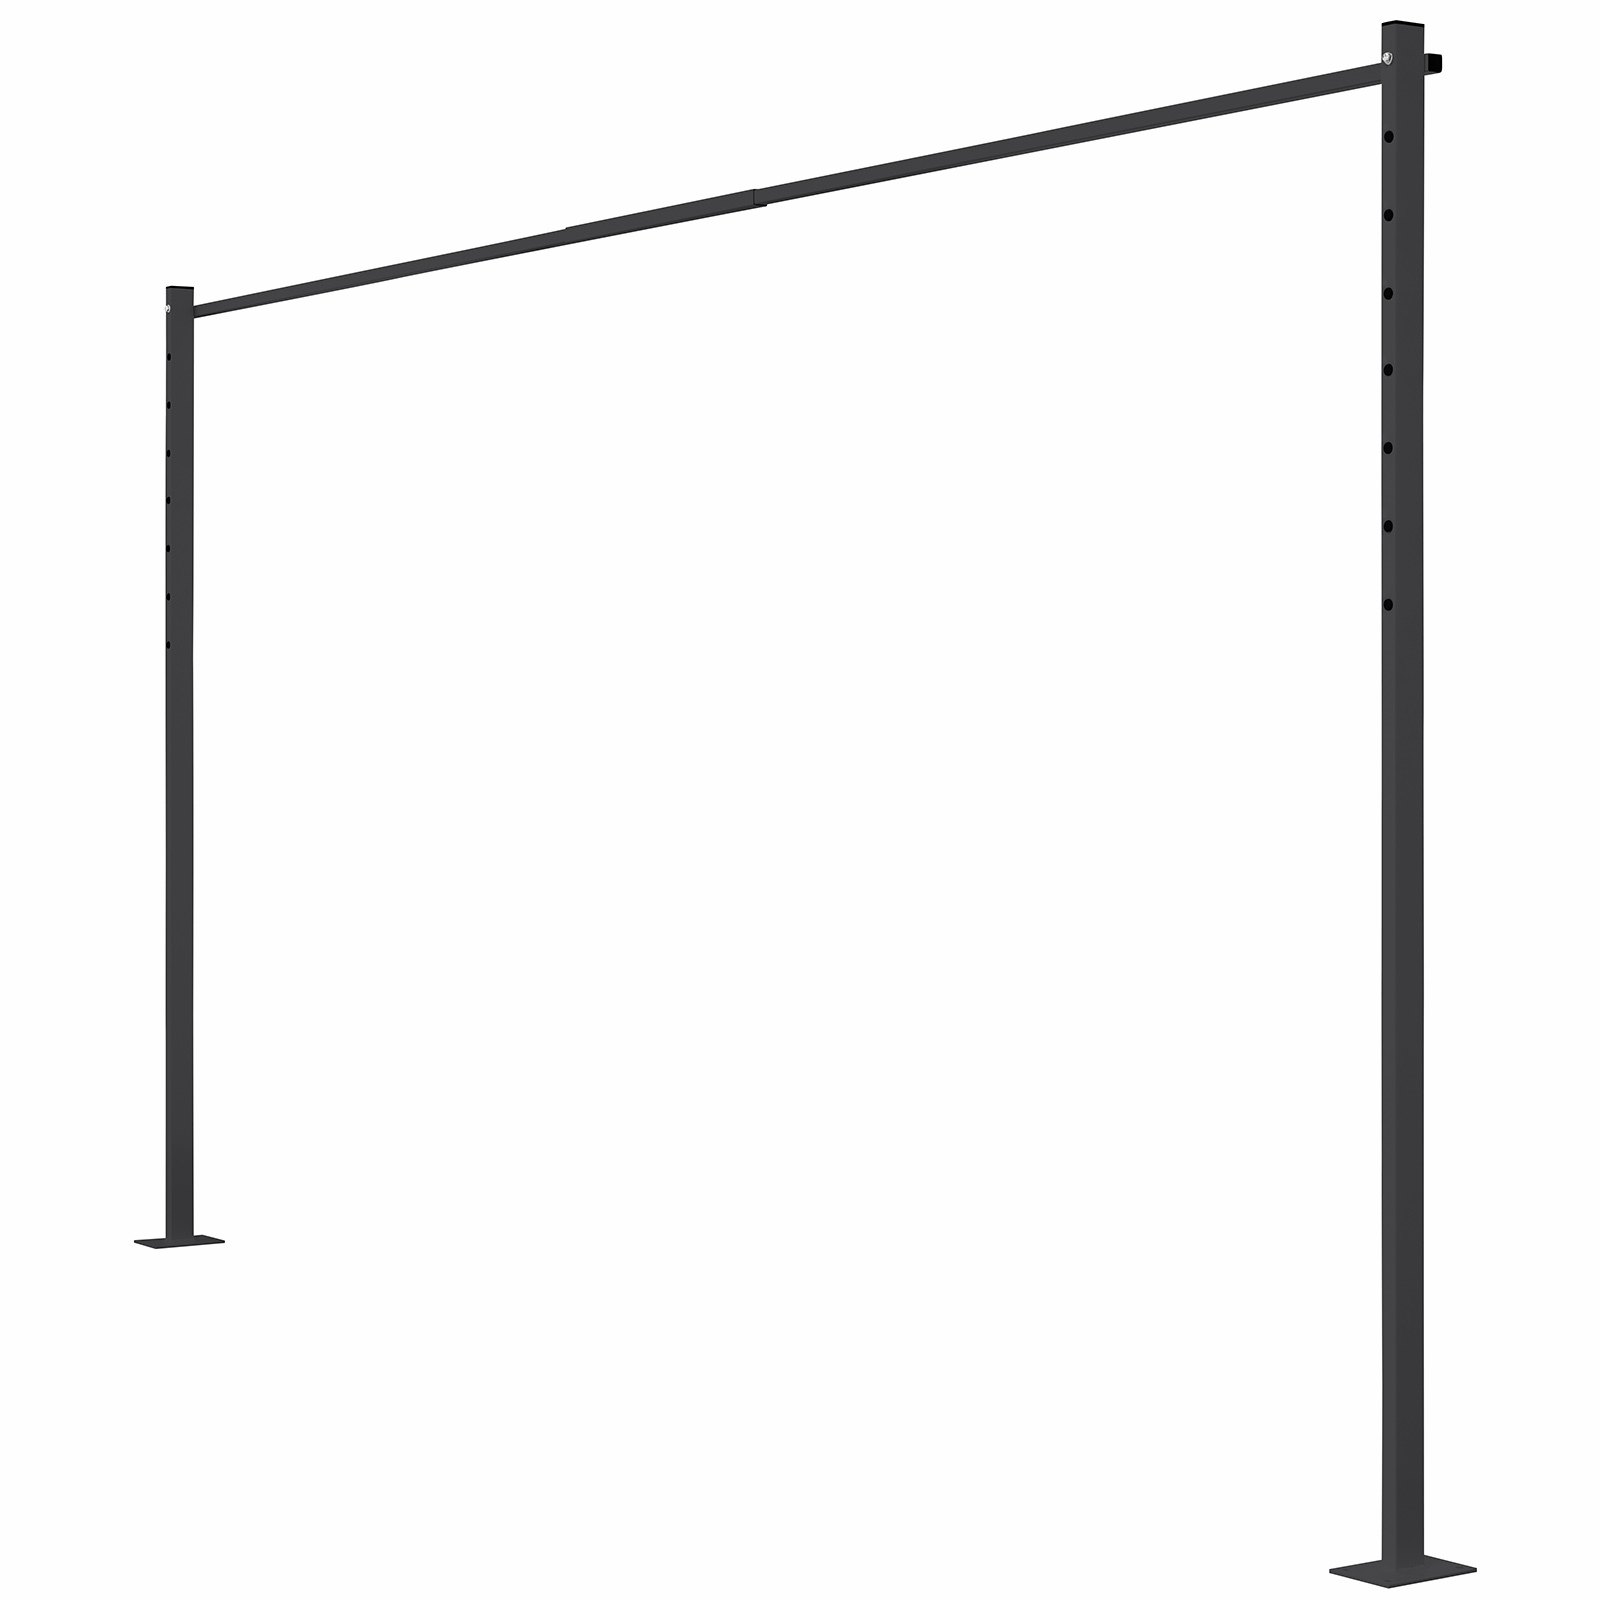 Austral 3.3m Monument Fold Down Clothesline Accessory Ground Mount Kit Plated